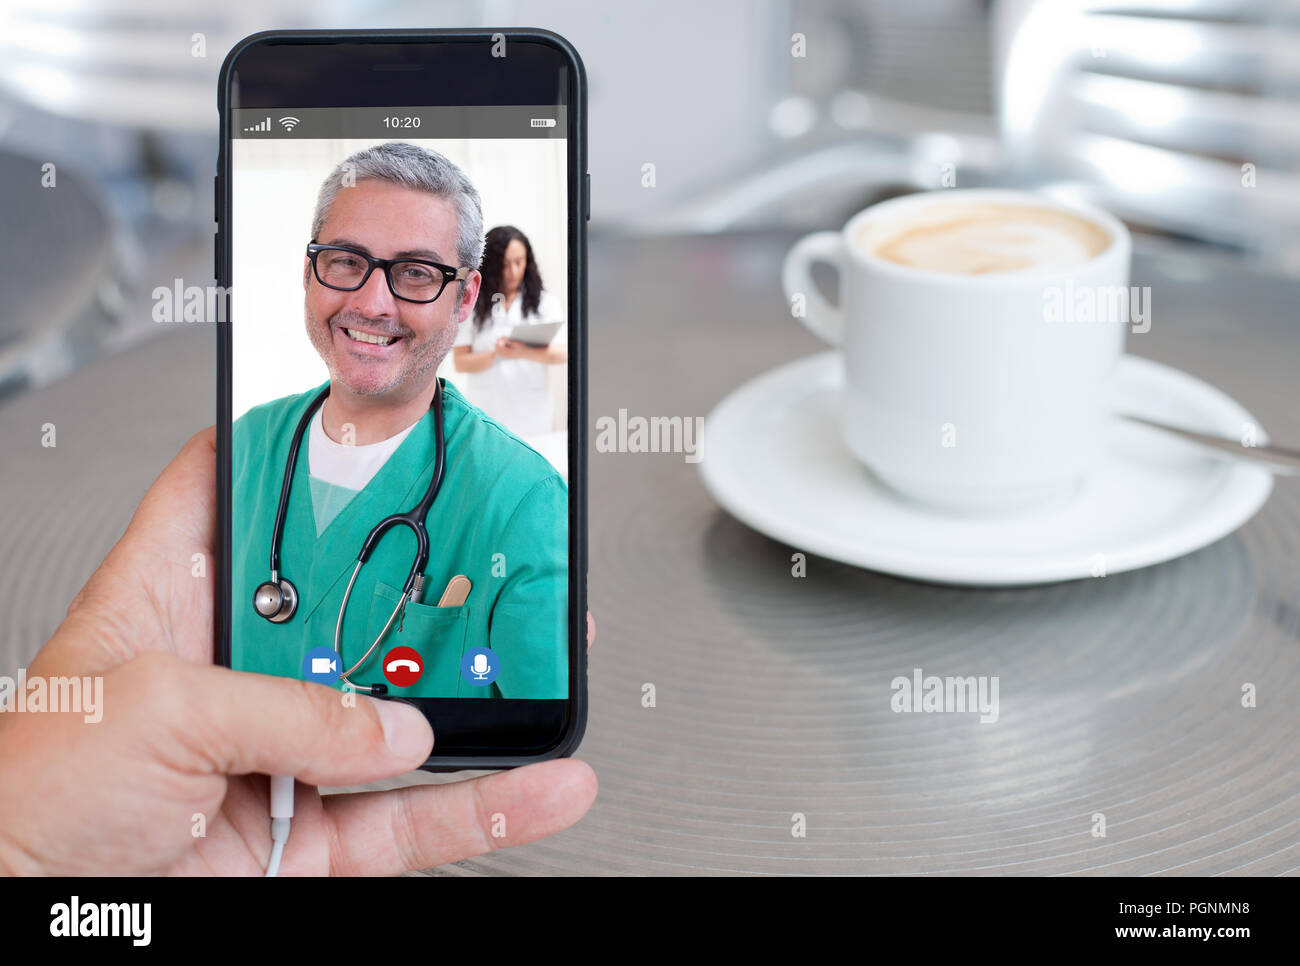 smartphone video call to talk with your doctor drinking coffee - Stock Image